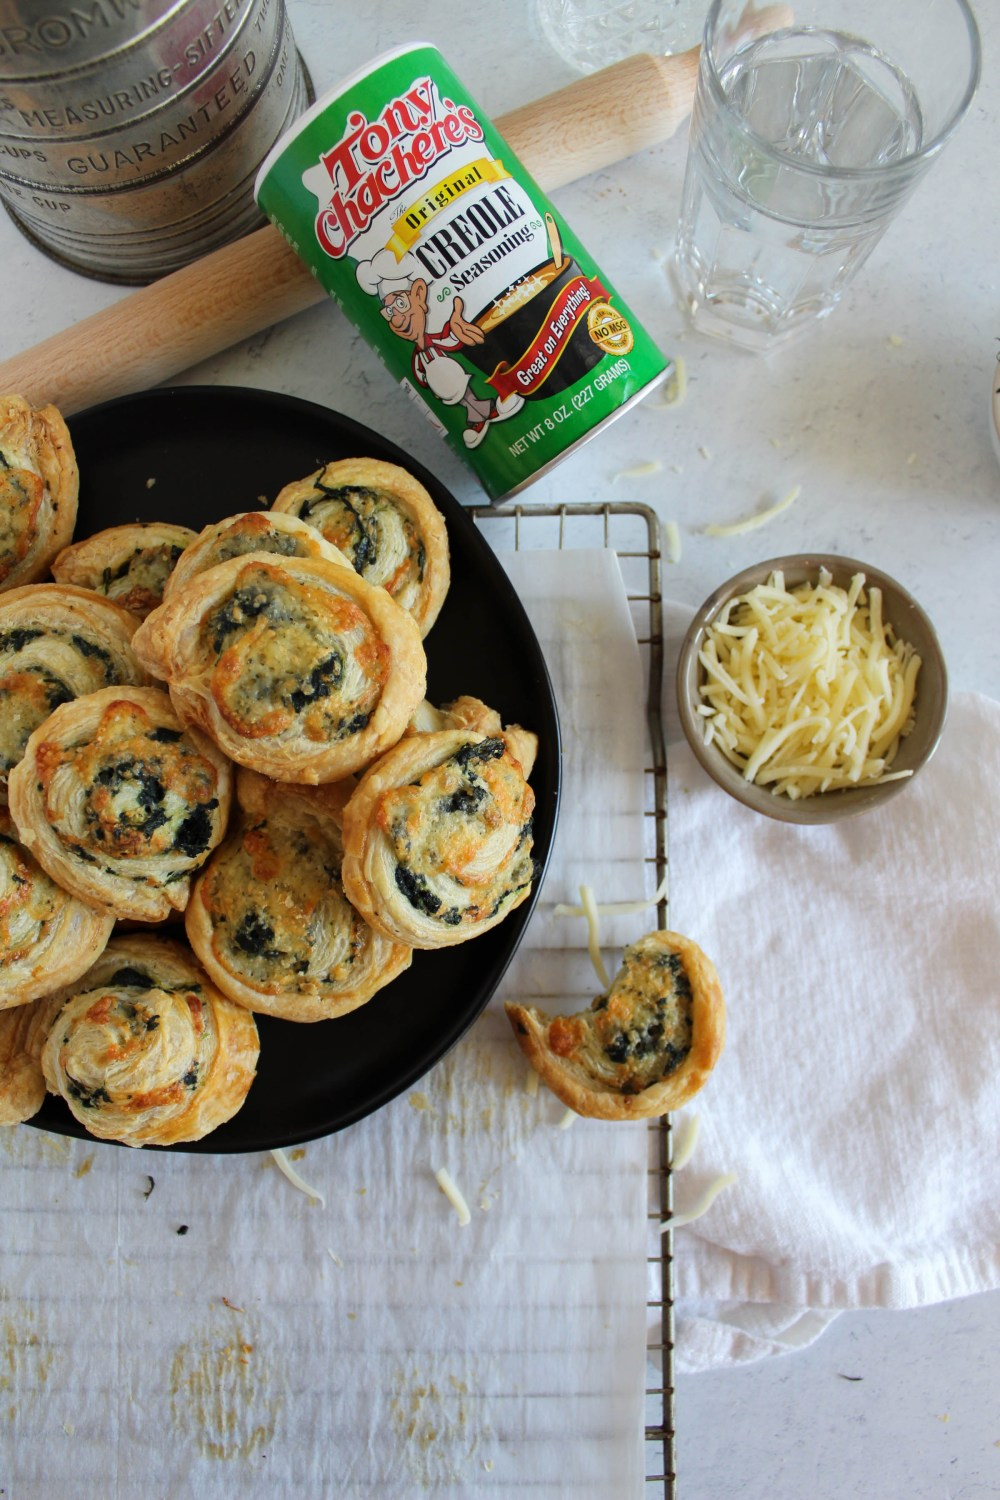 overhead view of spinach pinwheels on a plate with Tony's Chachere's seasoning in the background.